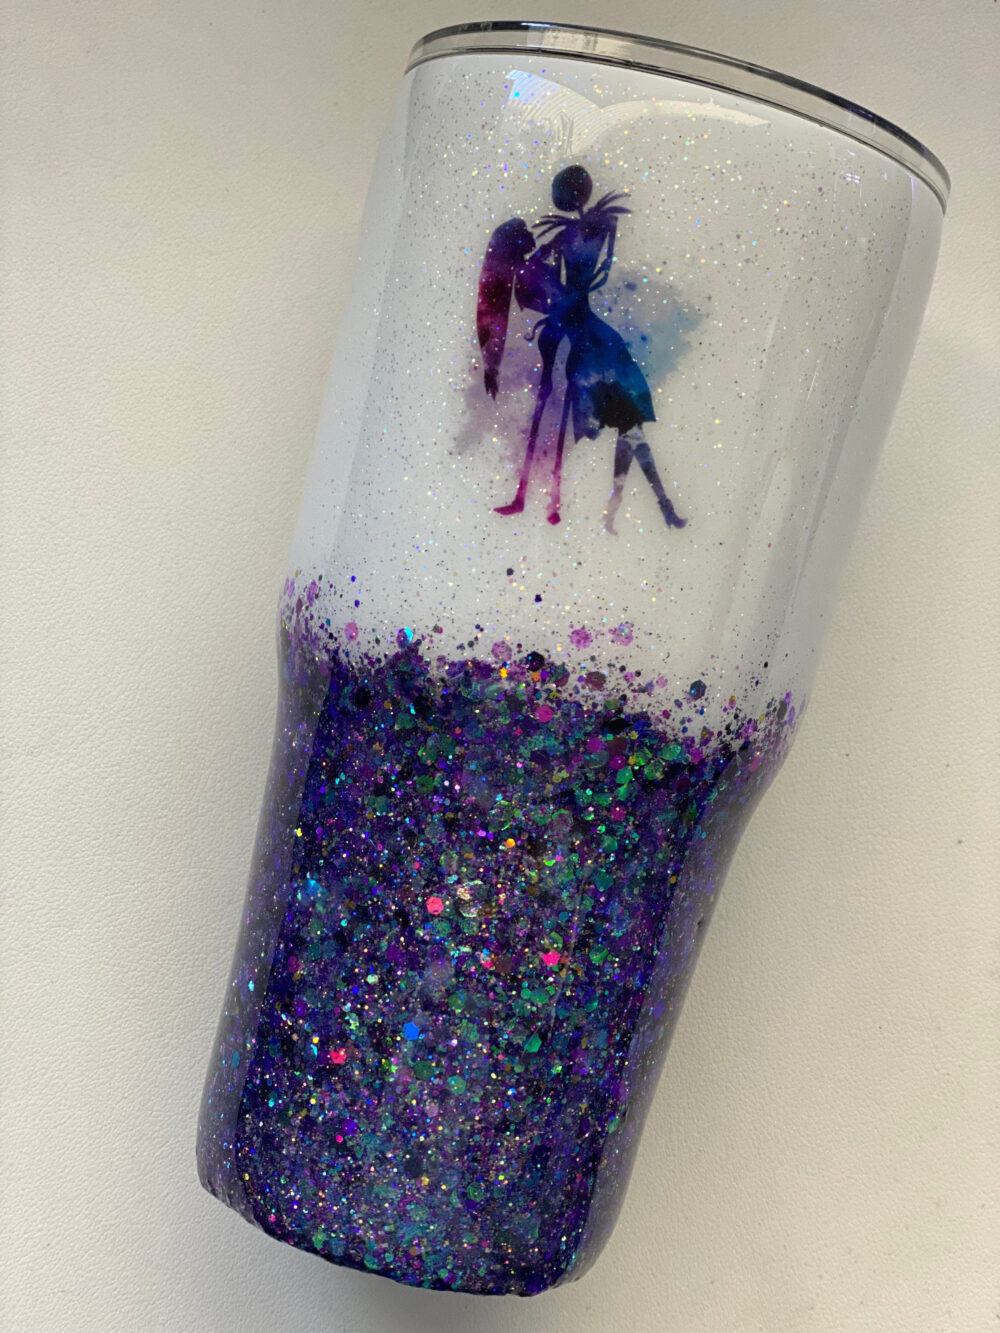 Jack & Sally Glitter Tumbler - Personalized Halloween Tumbler- Nightmare Before Christmas Any Name